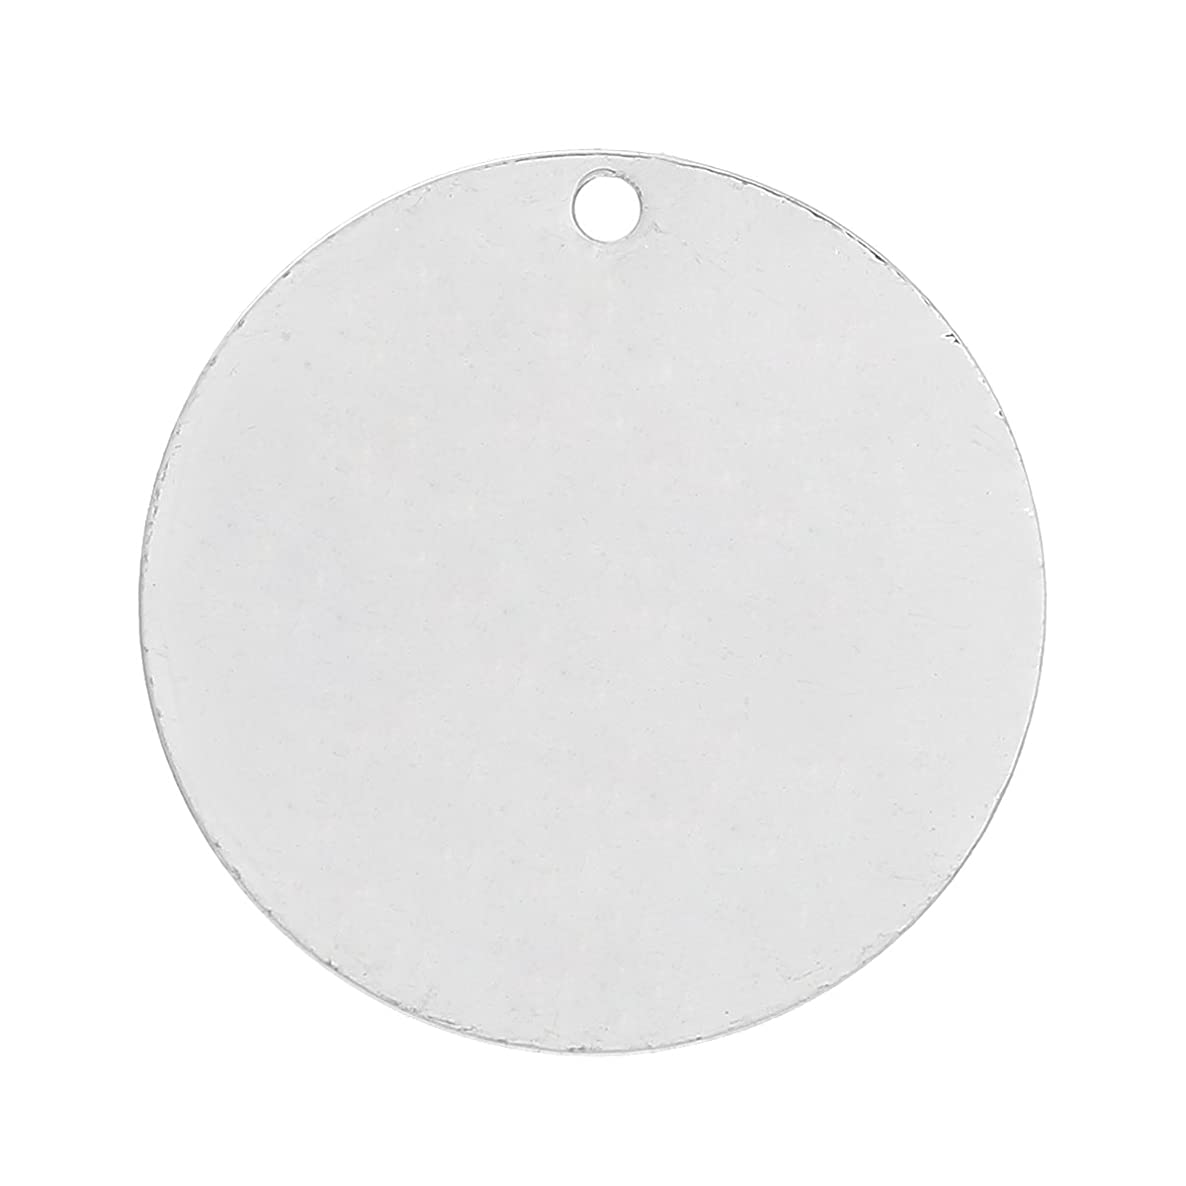 Craft Making Shop 20 Silver Plated Copper Round Metal Stamping Blanks 25mm Diameter Circle Blanks